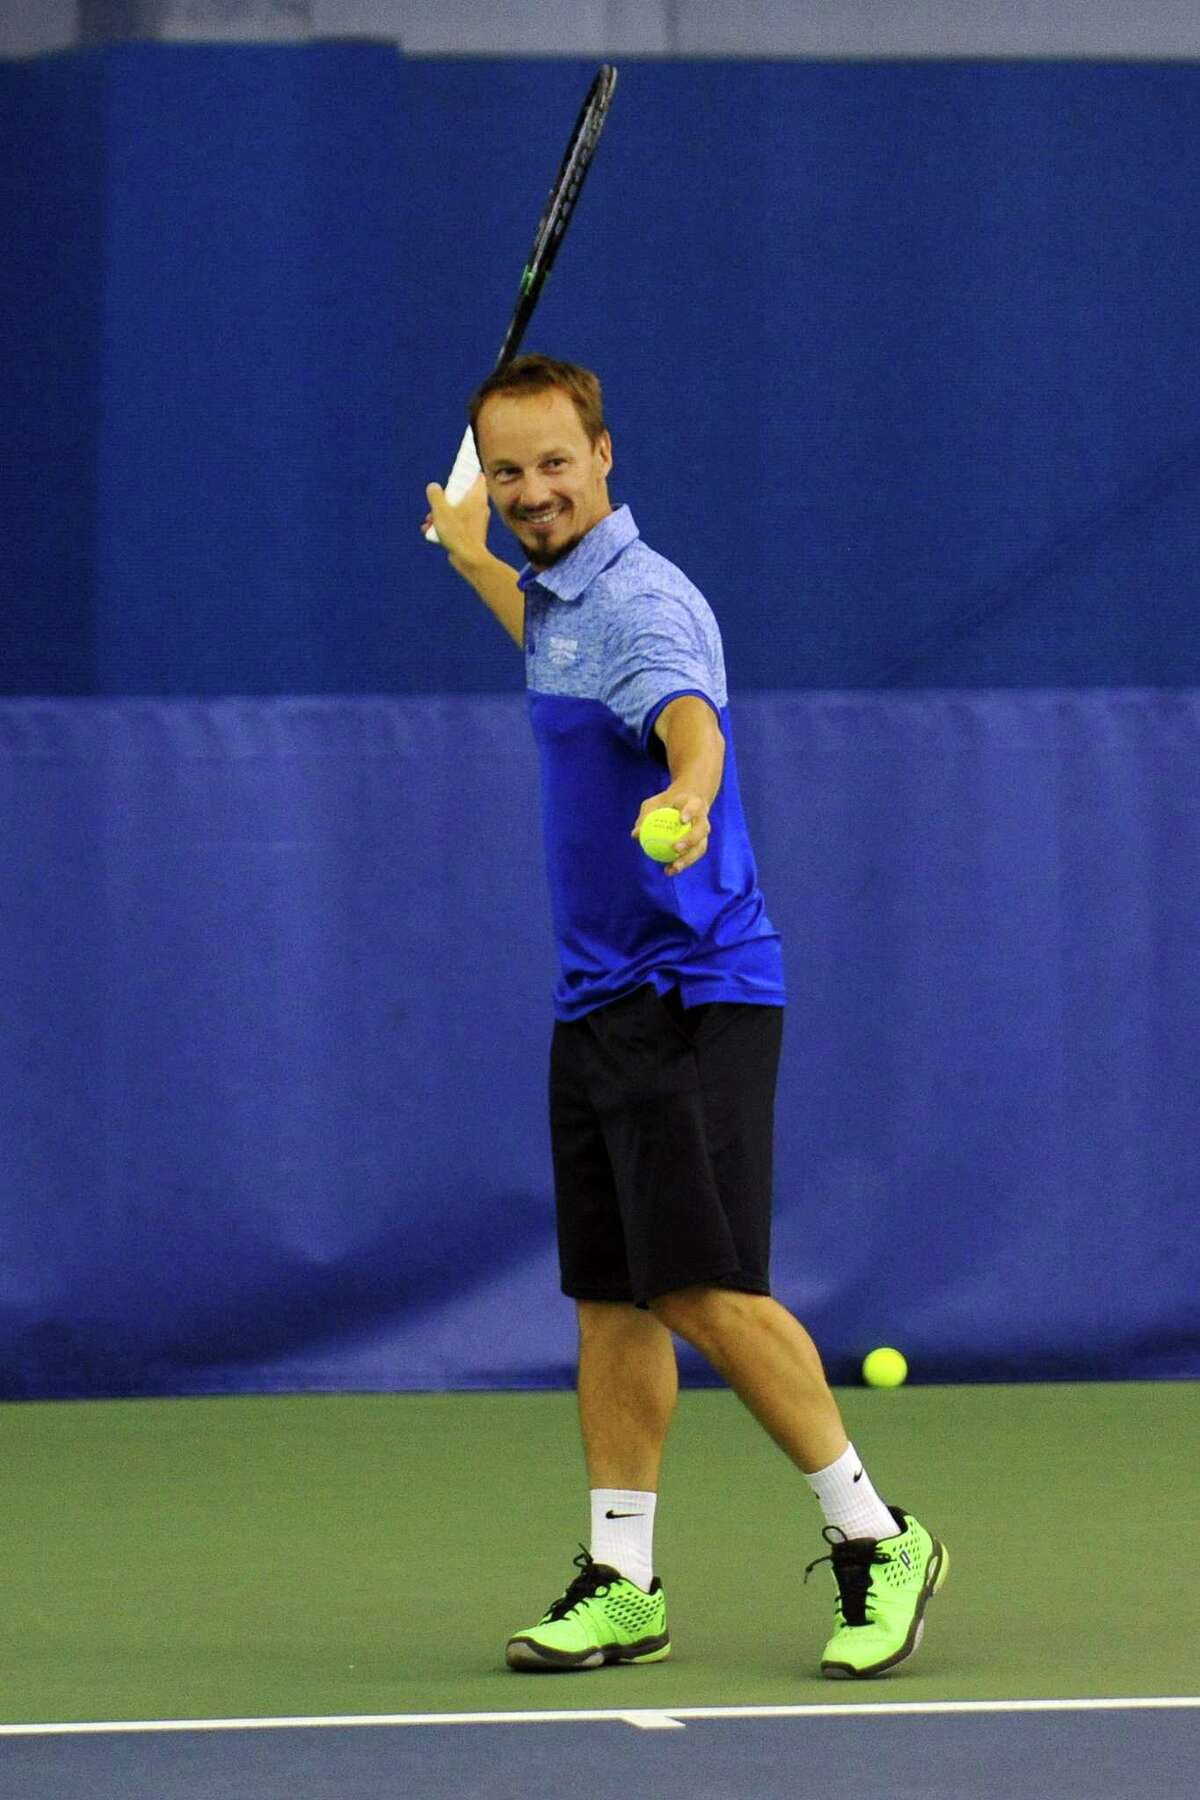 Radoslaw Szymanik, a tennis pro at Chelsea Piers in Stamford, hits a forehand while rallying with another tennis pro at Chelsea Piers on Thursday, June 30, 2016. Szymanik will be a coach on Poland's Summer Olympics tennis team.